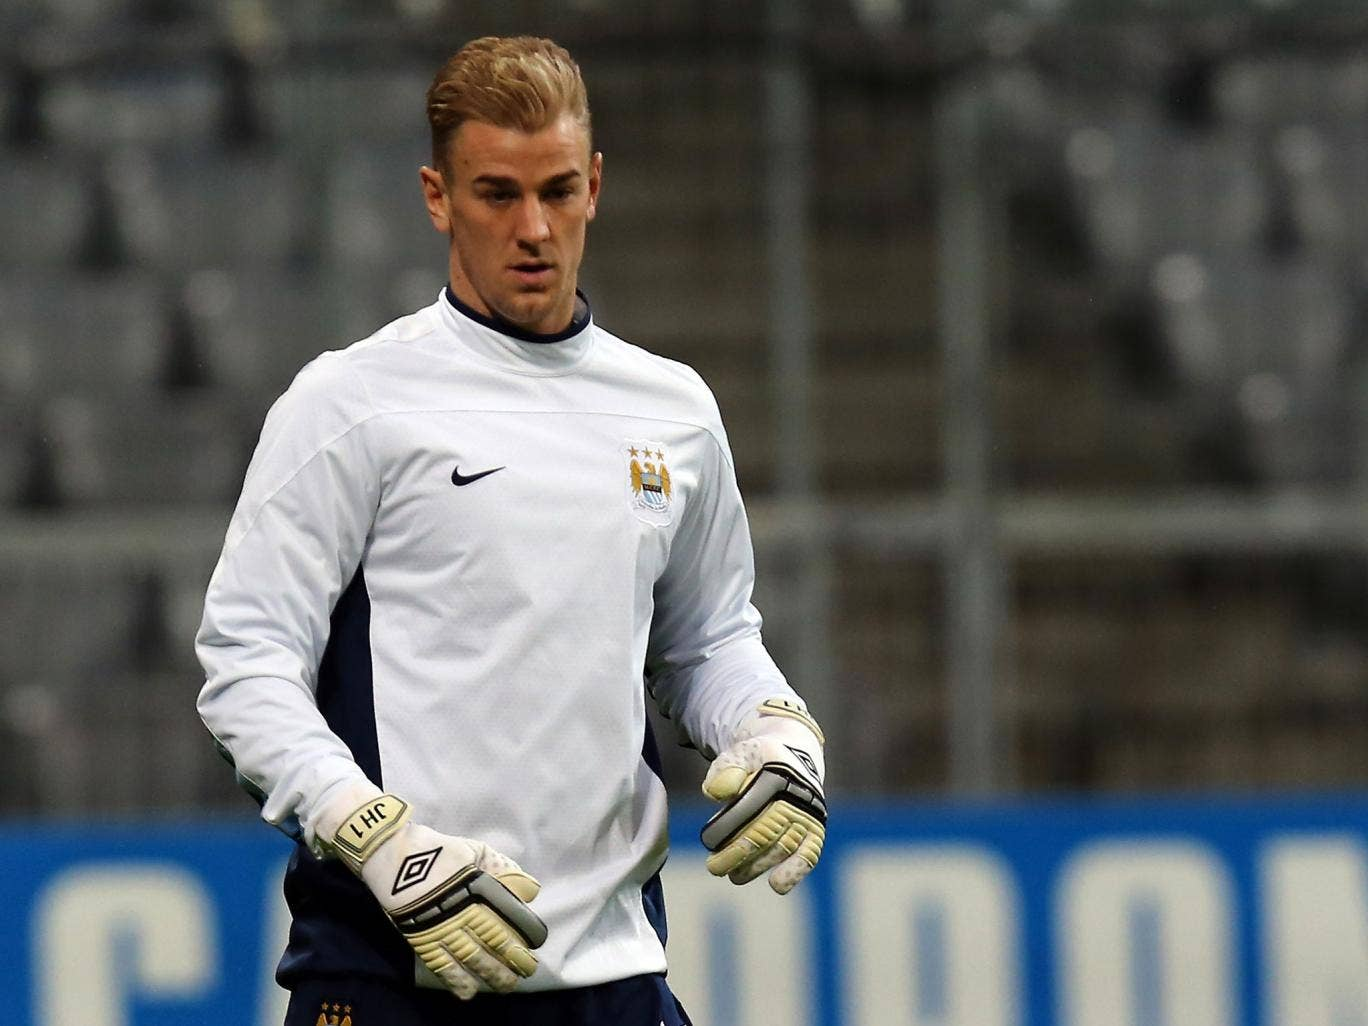 Goalkeeper Joe Hart plays the ball during a Manchester City training session at Allianz Arena